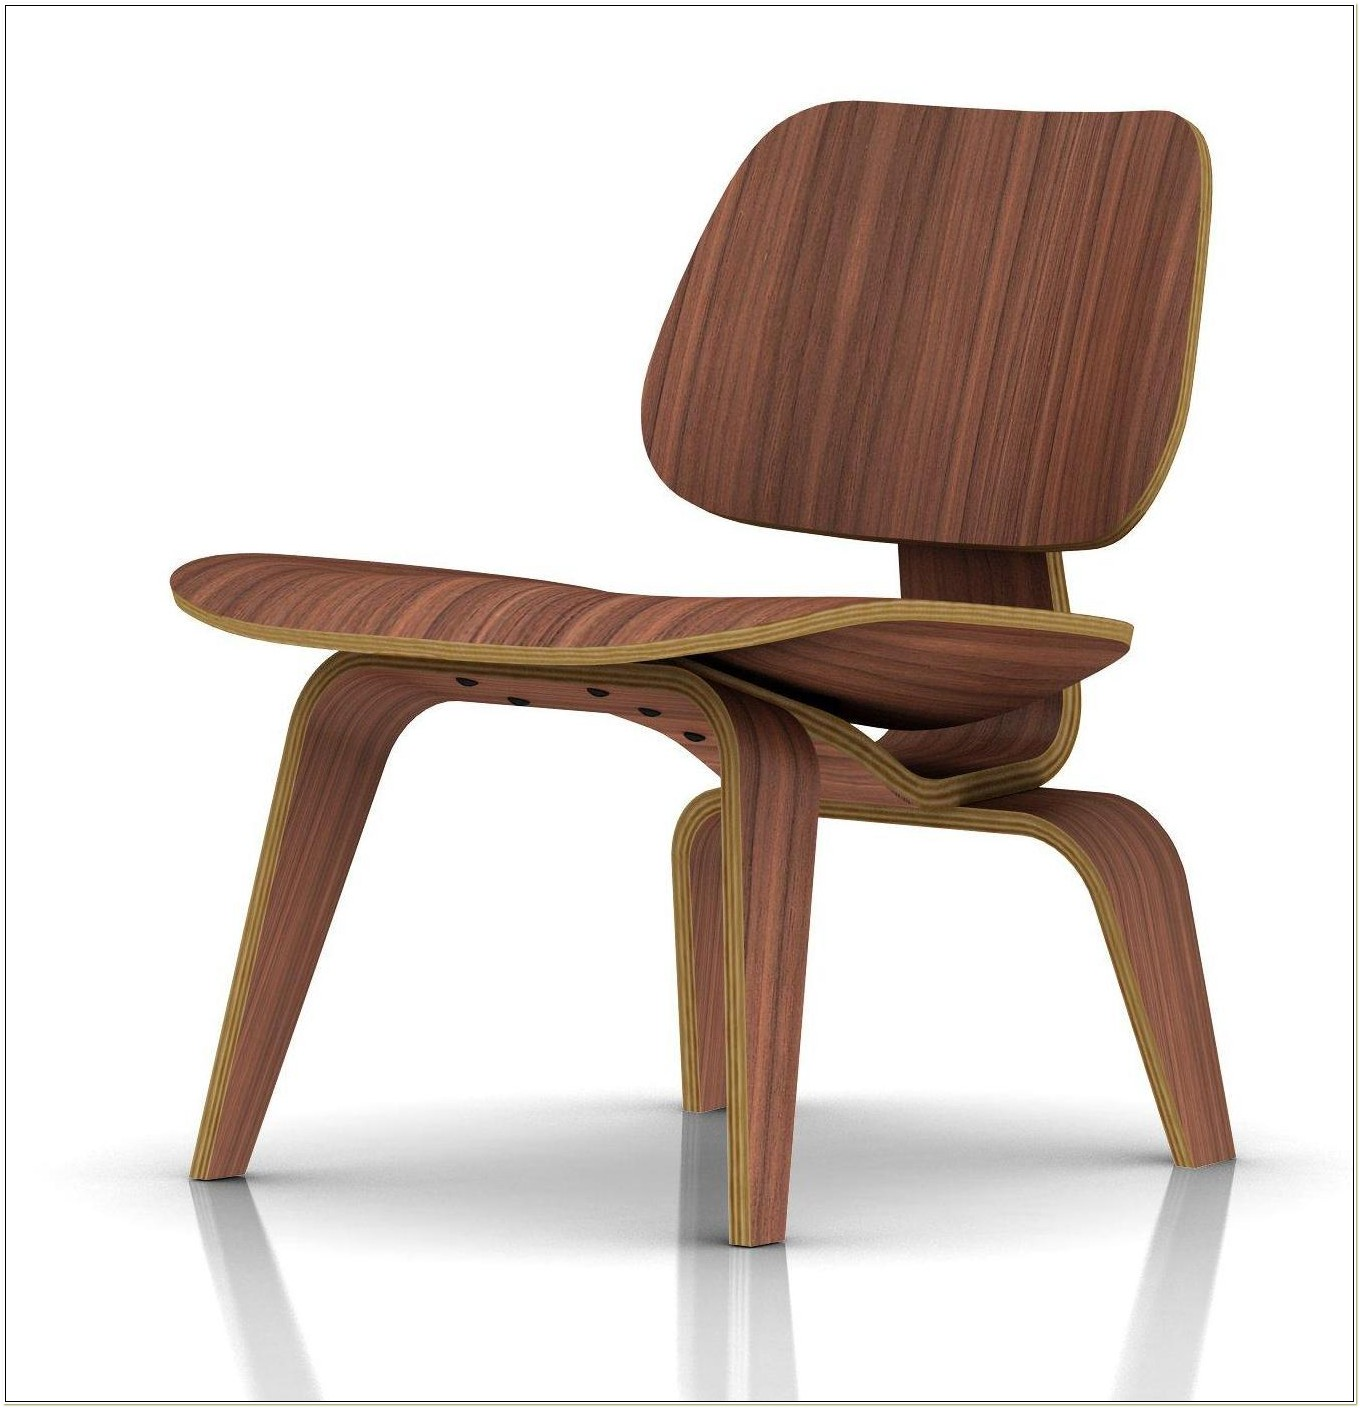 Eames Molded Plywood Chair History